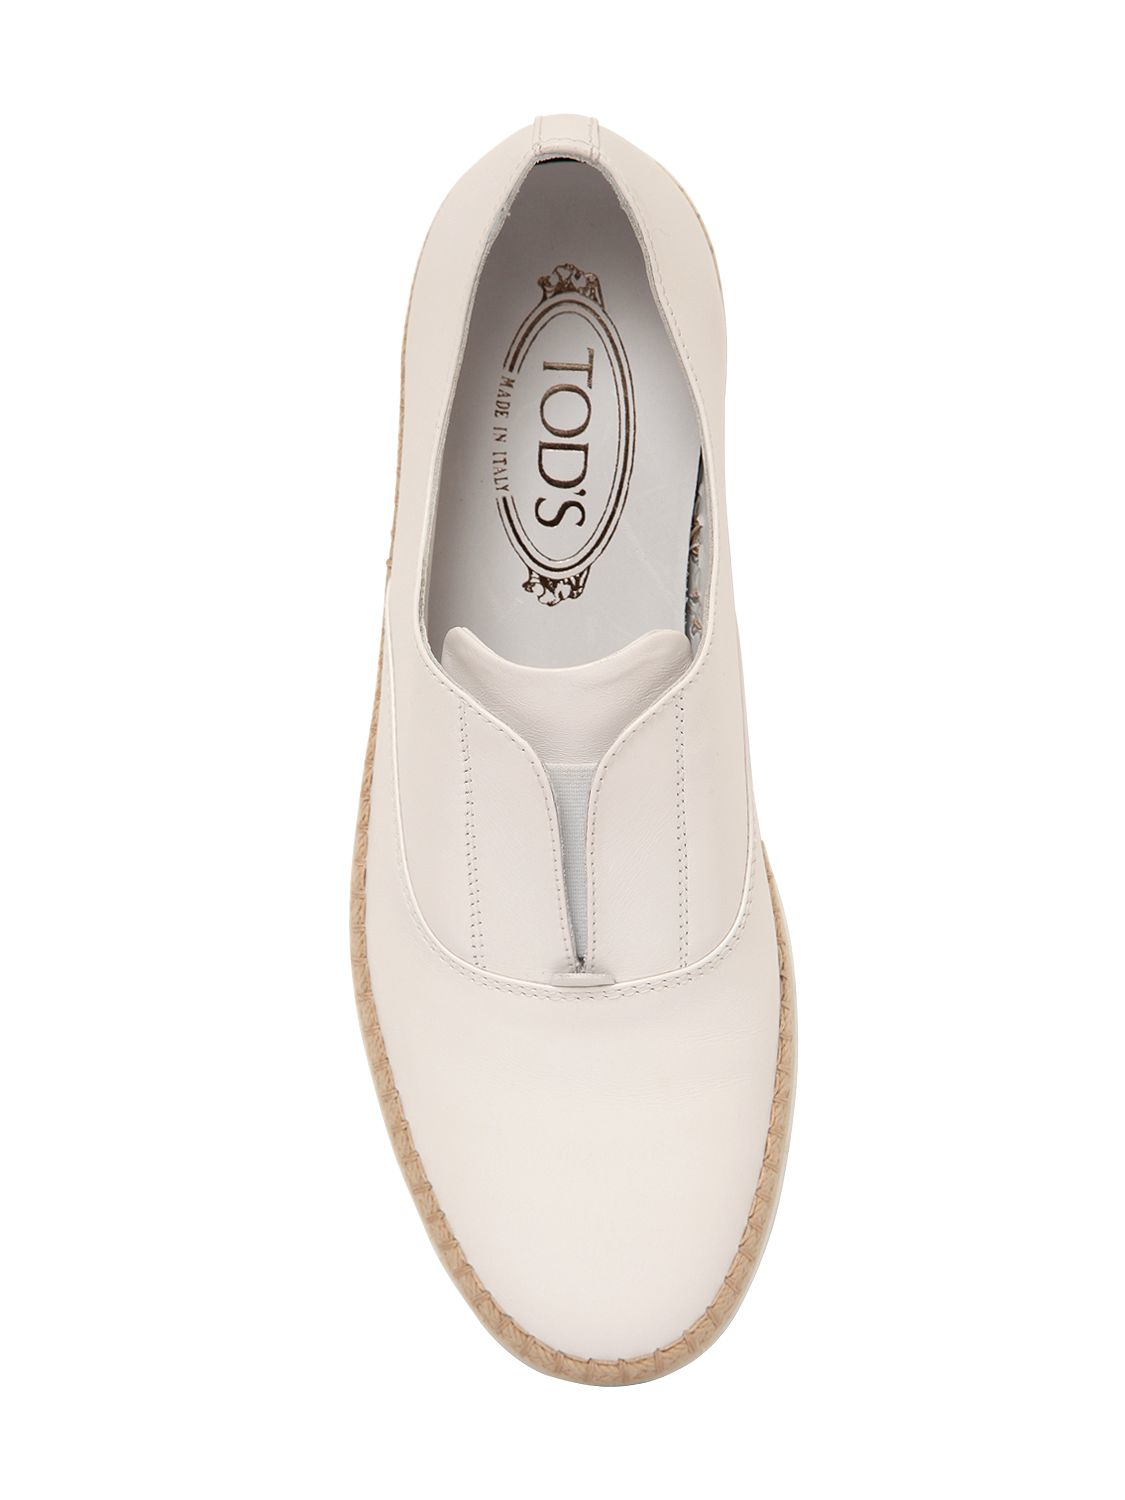 Tod's 20mm Leather & Raffia Slip-on Sneakers in White